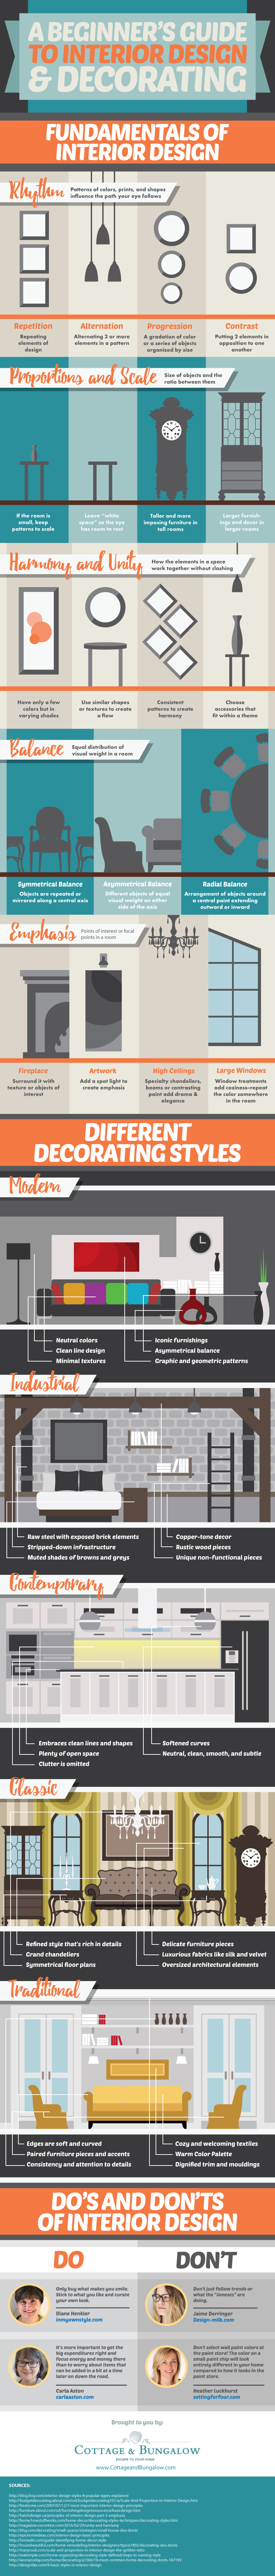 A Beginner's guide to Interior Design